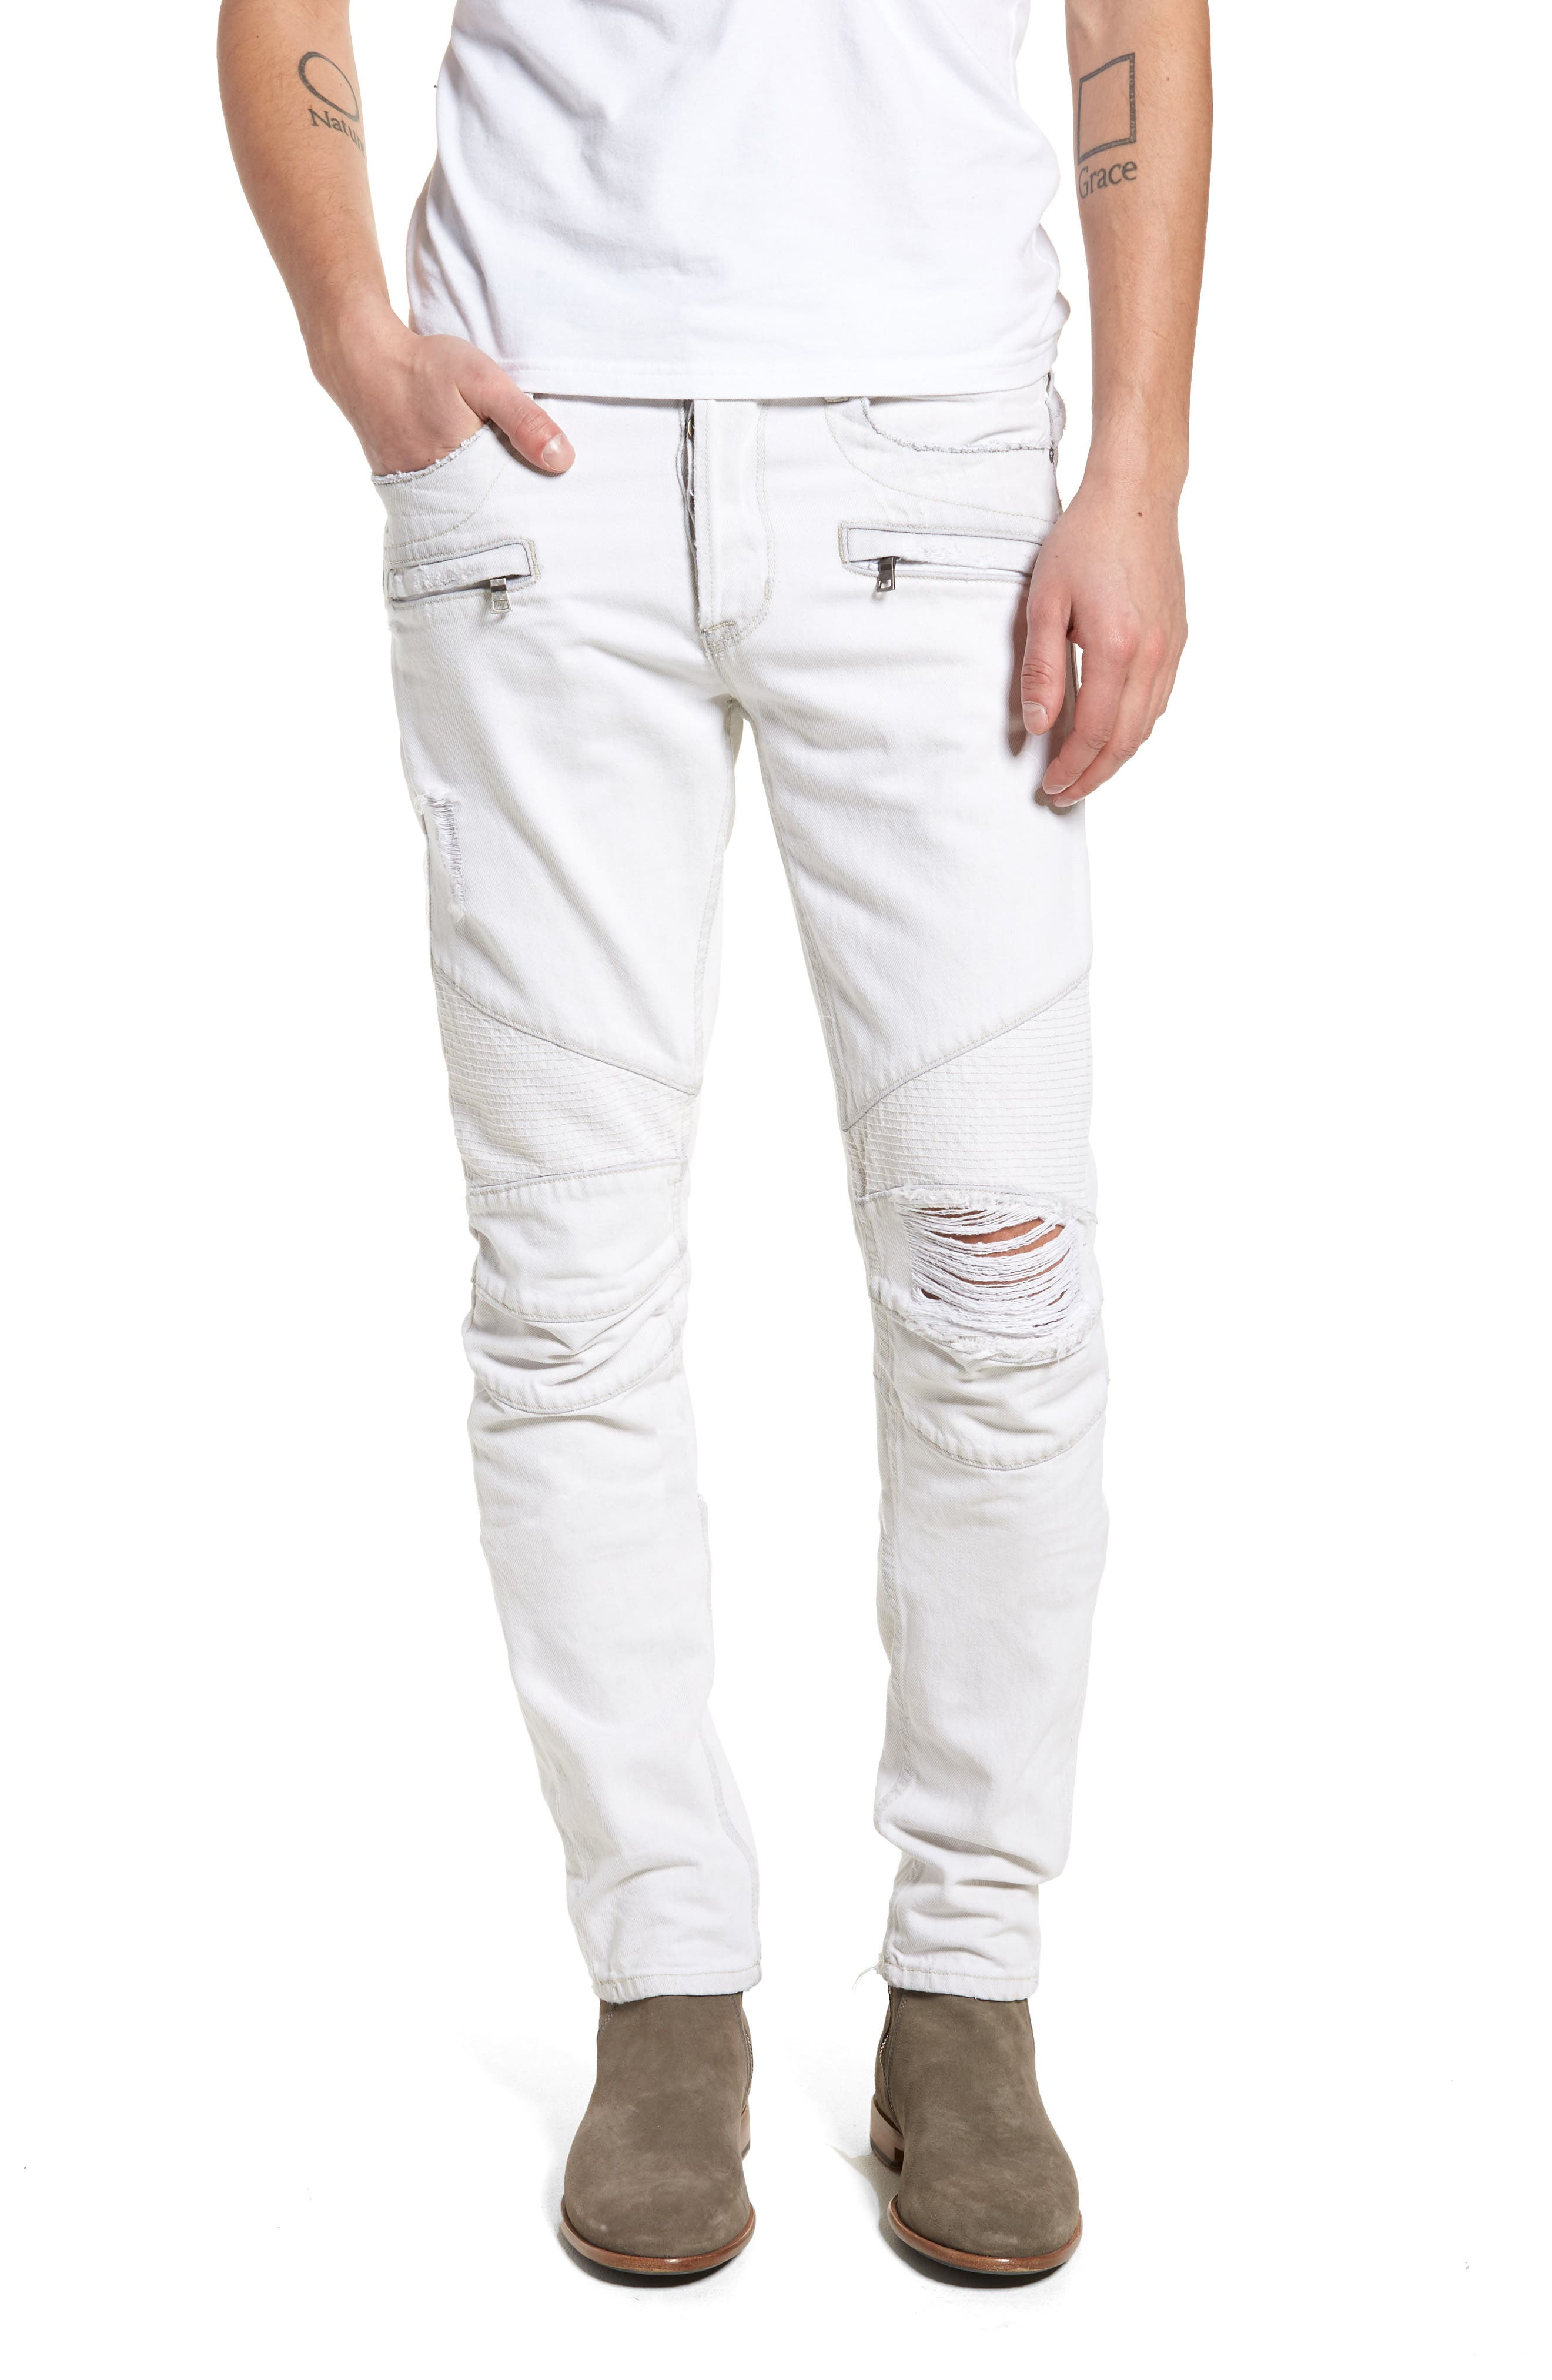 Blinder Biker Skinny Fit Moto Jeans,                             Main thumbnail 1, color,                             Extracted White